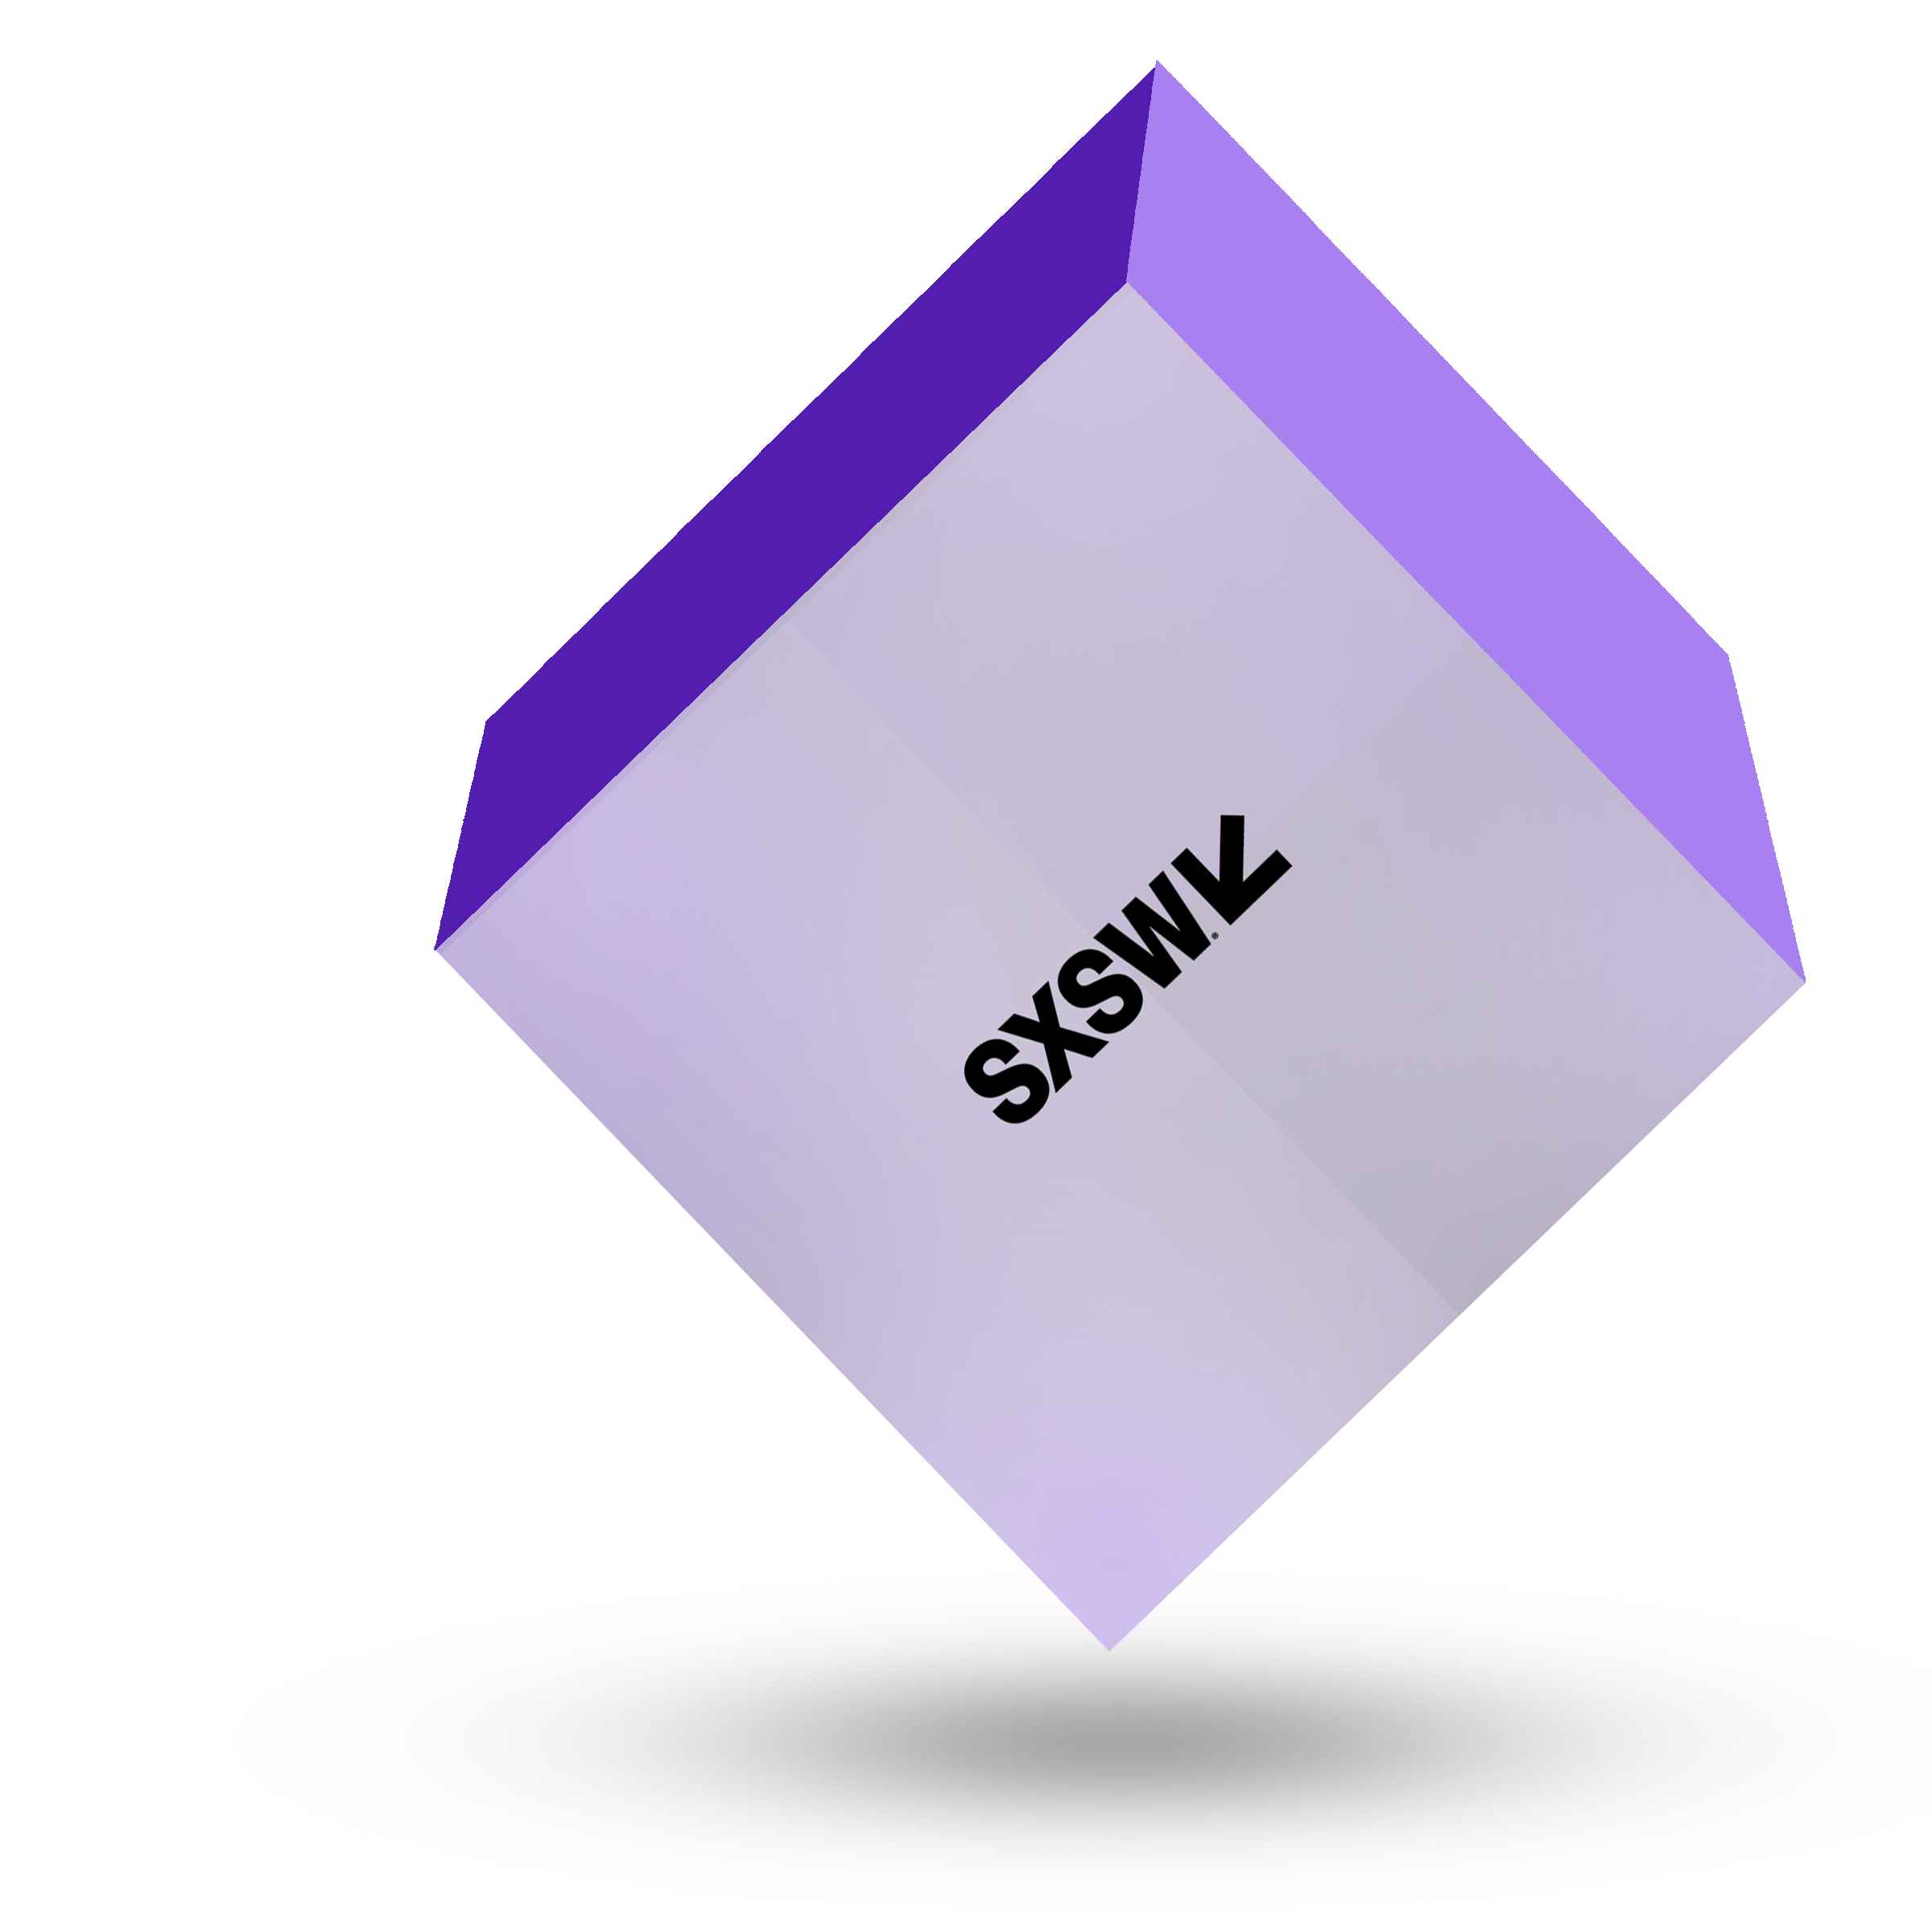 BRAND-CUBES-SXSW.png